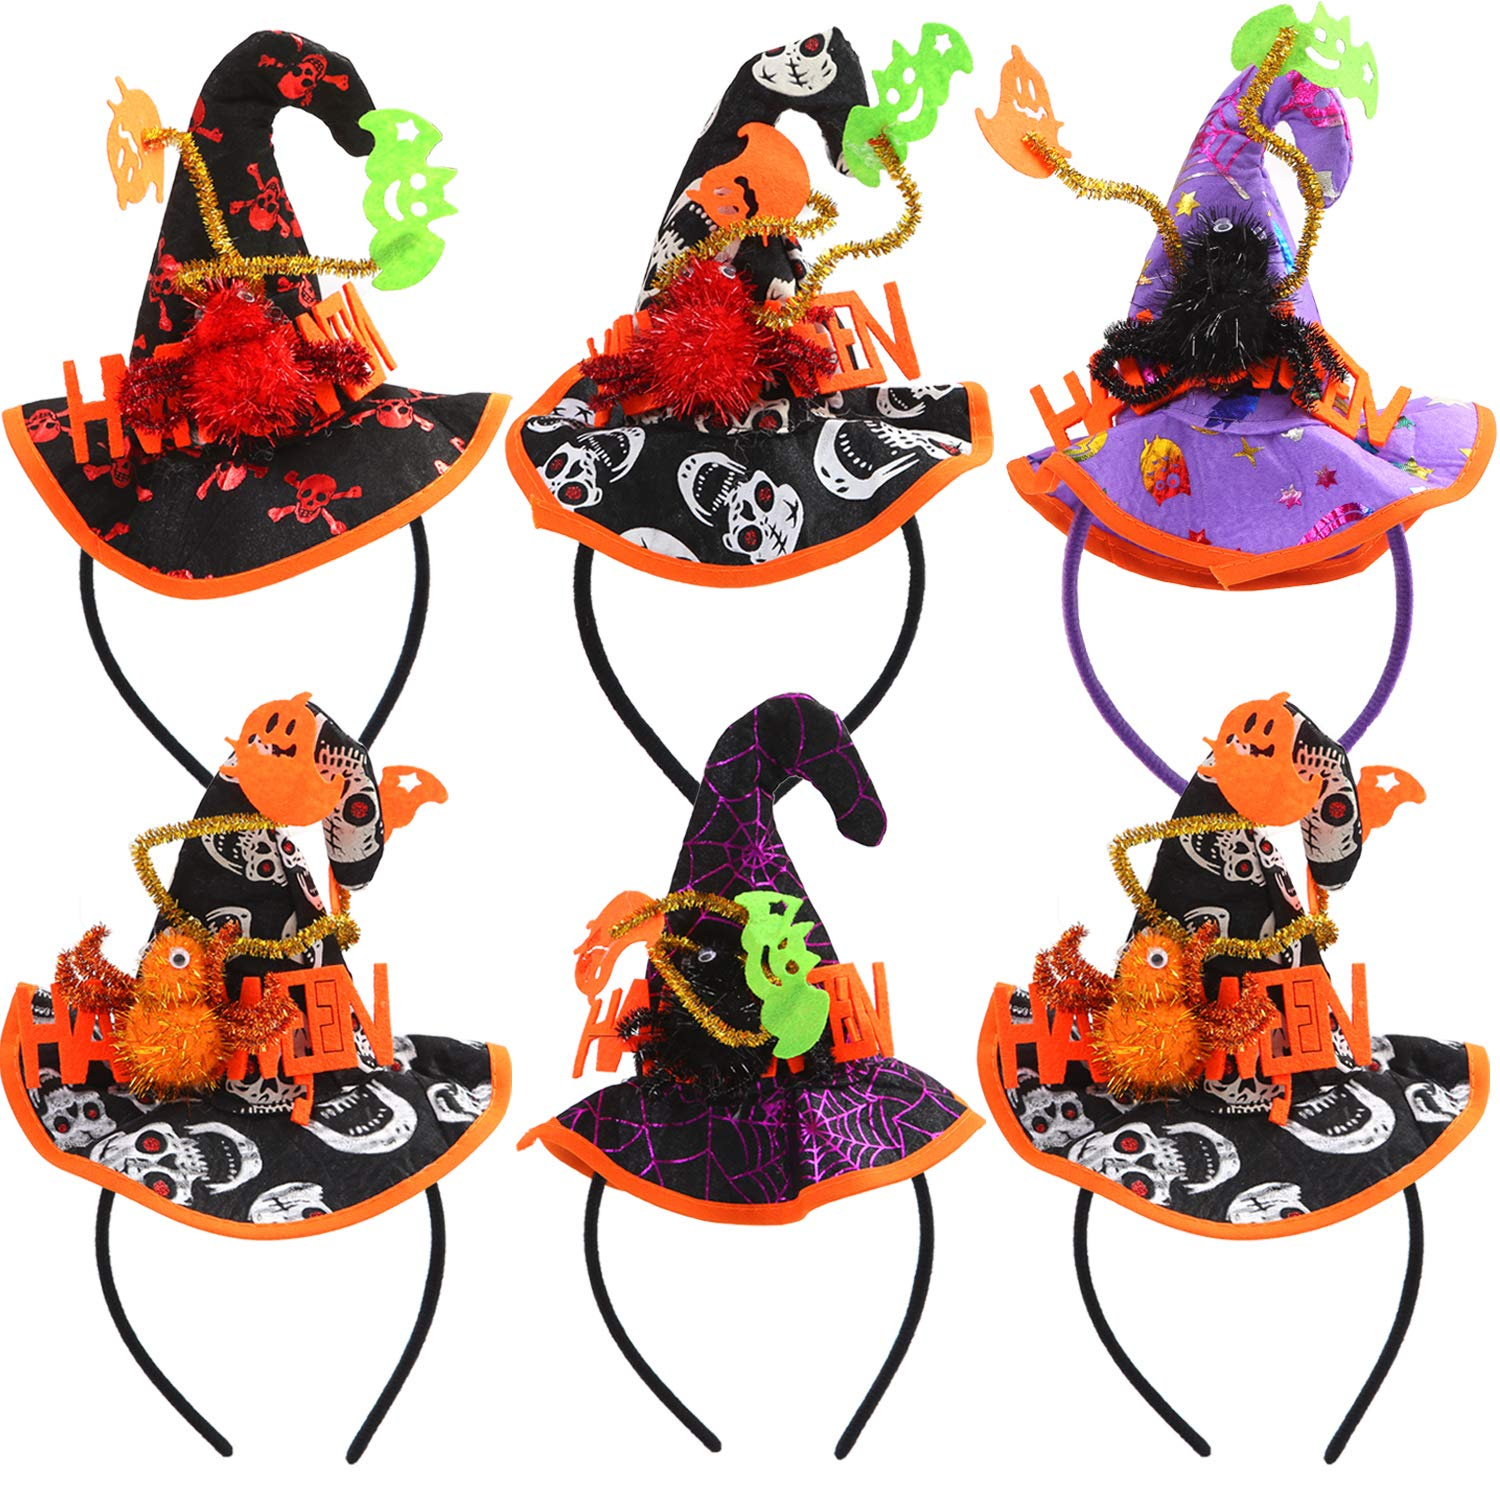 Elcoho 6 Pack Halloween Headbands Witch Hat Headband Halloween Party Witch Spider Hat Headbands Boppers for Halloween Costume Supplies by Elcoho